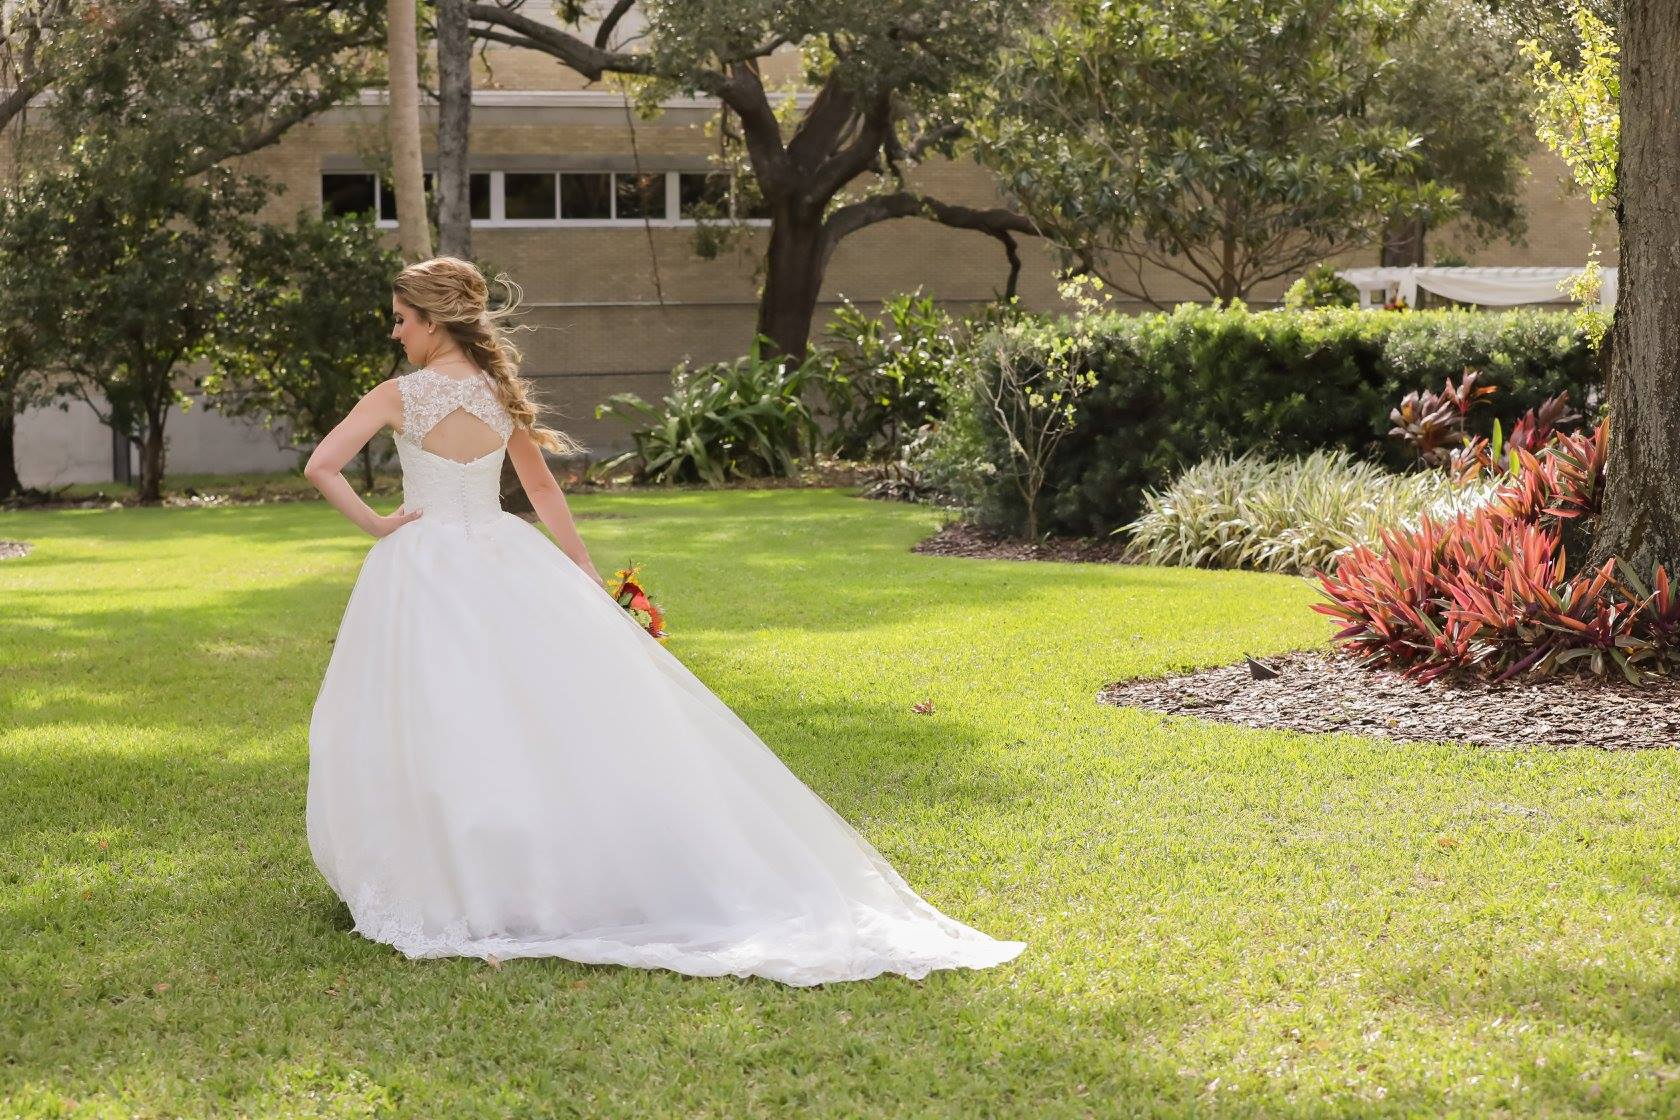 The bride truly looked like a princess in her lace ballgown with keyhole illusion lace detailing on the back.